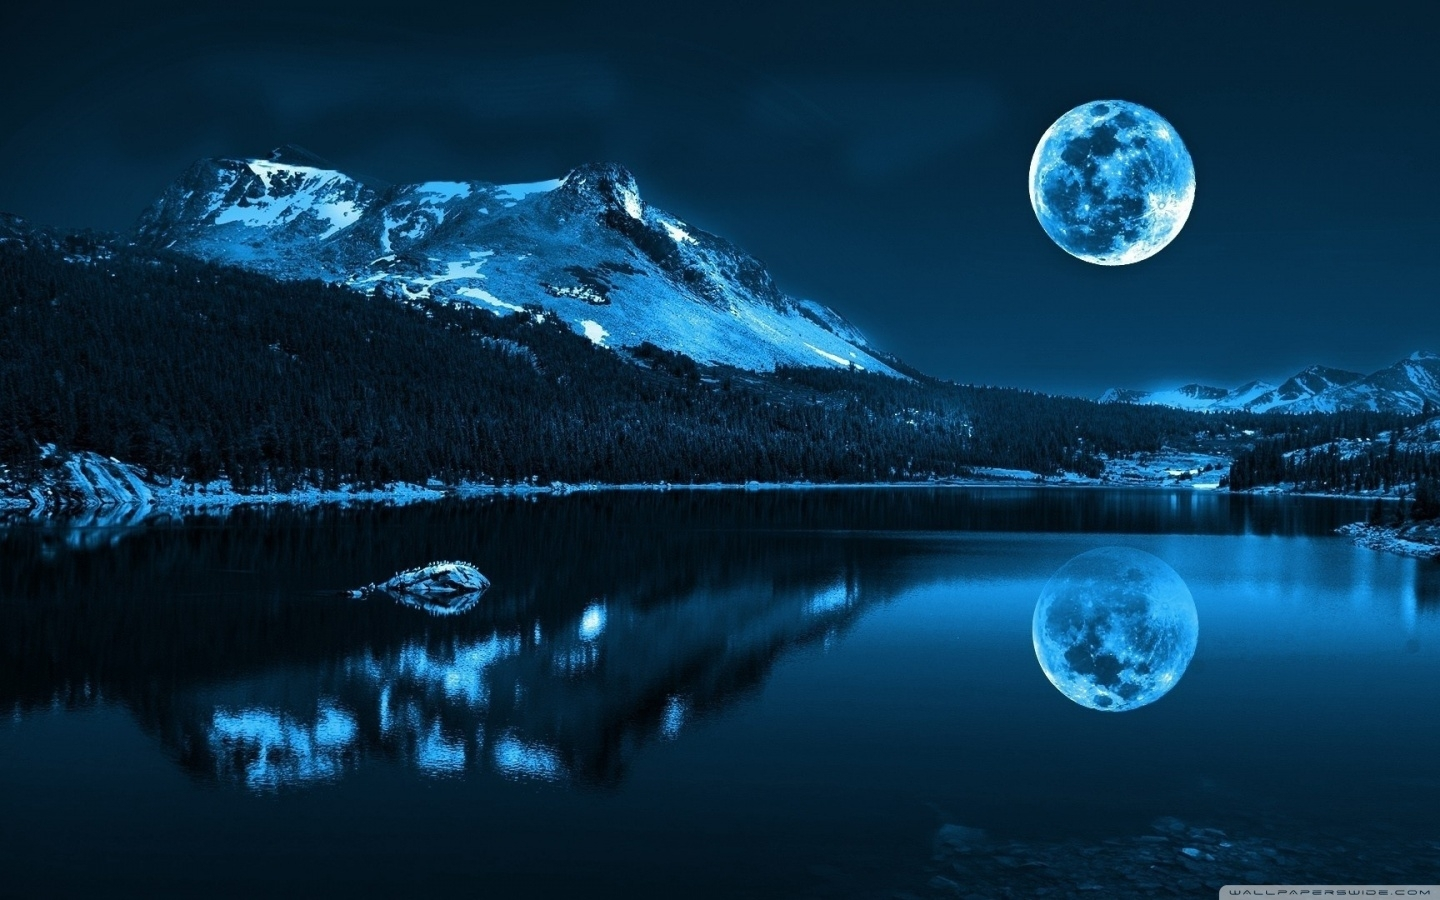 moonlight night ❤ 4k hd desktop wallpaper for 4k ultra hd tv • wide